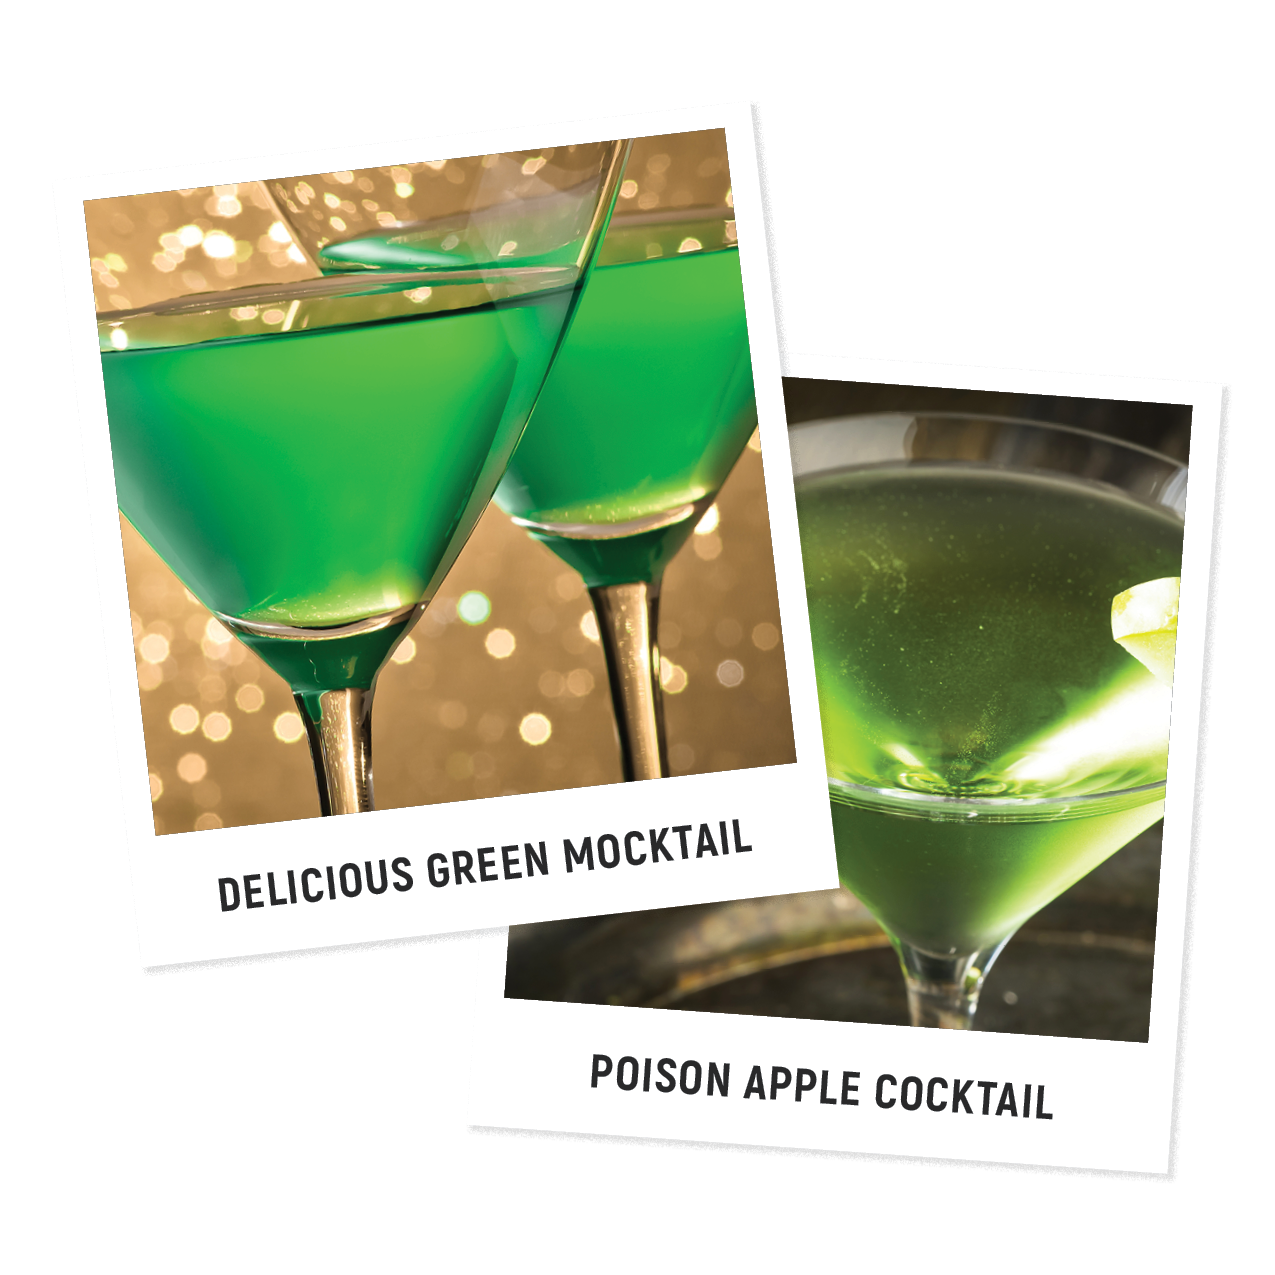 Delicious Green Mocktail and Poison Apple Cocktail